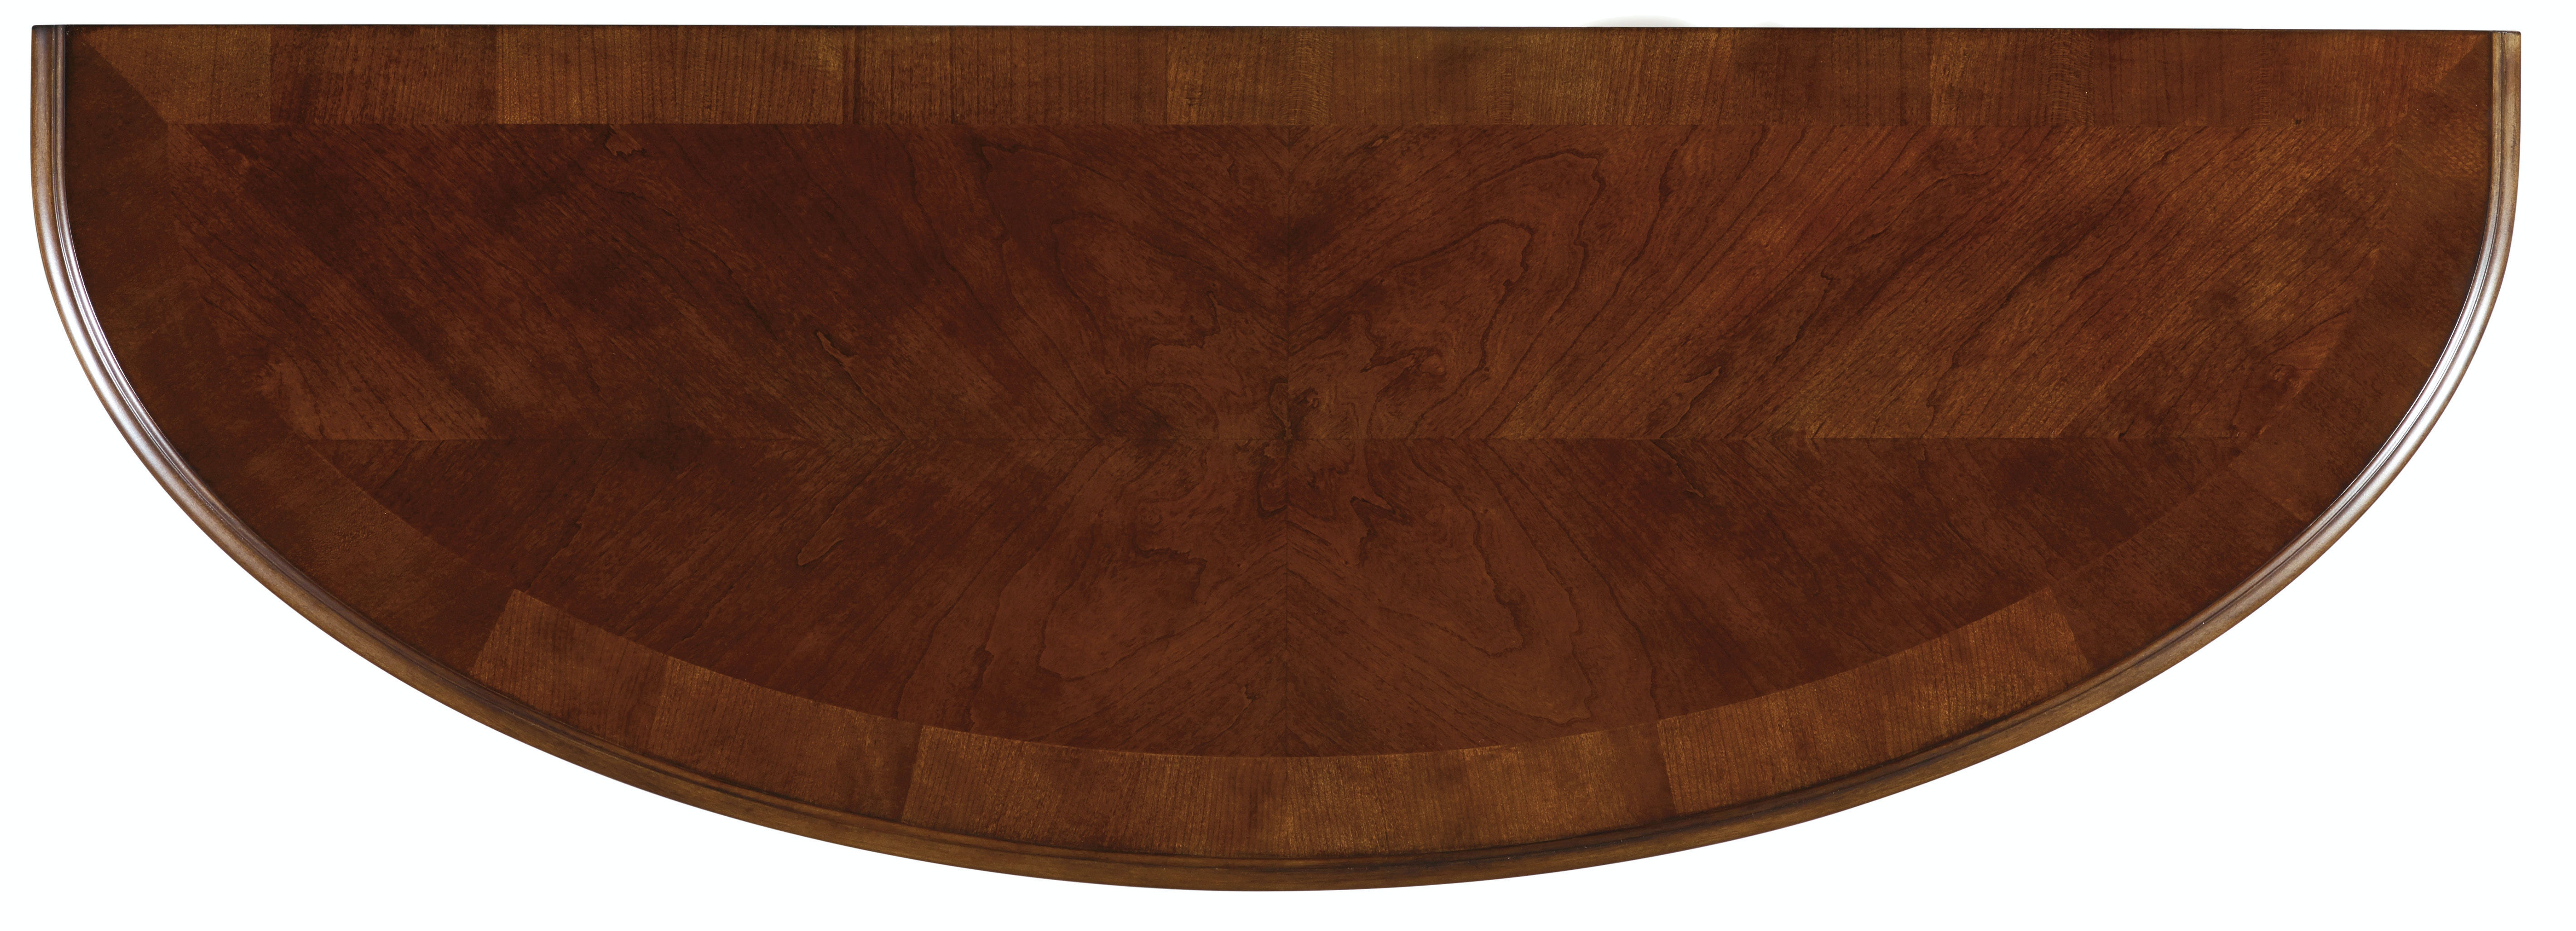 ... Hooker Furniture Brookhaven Console Table 281 80 151 ...